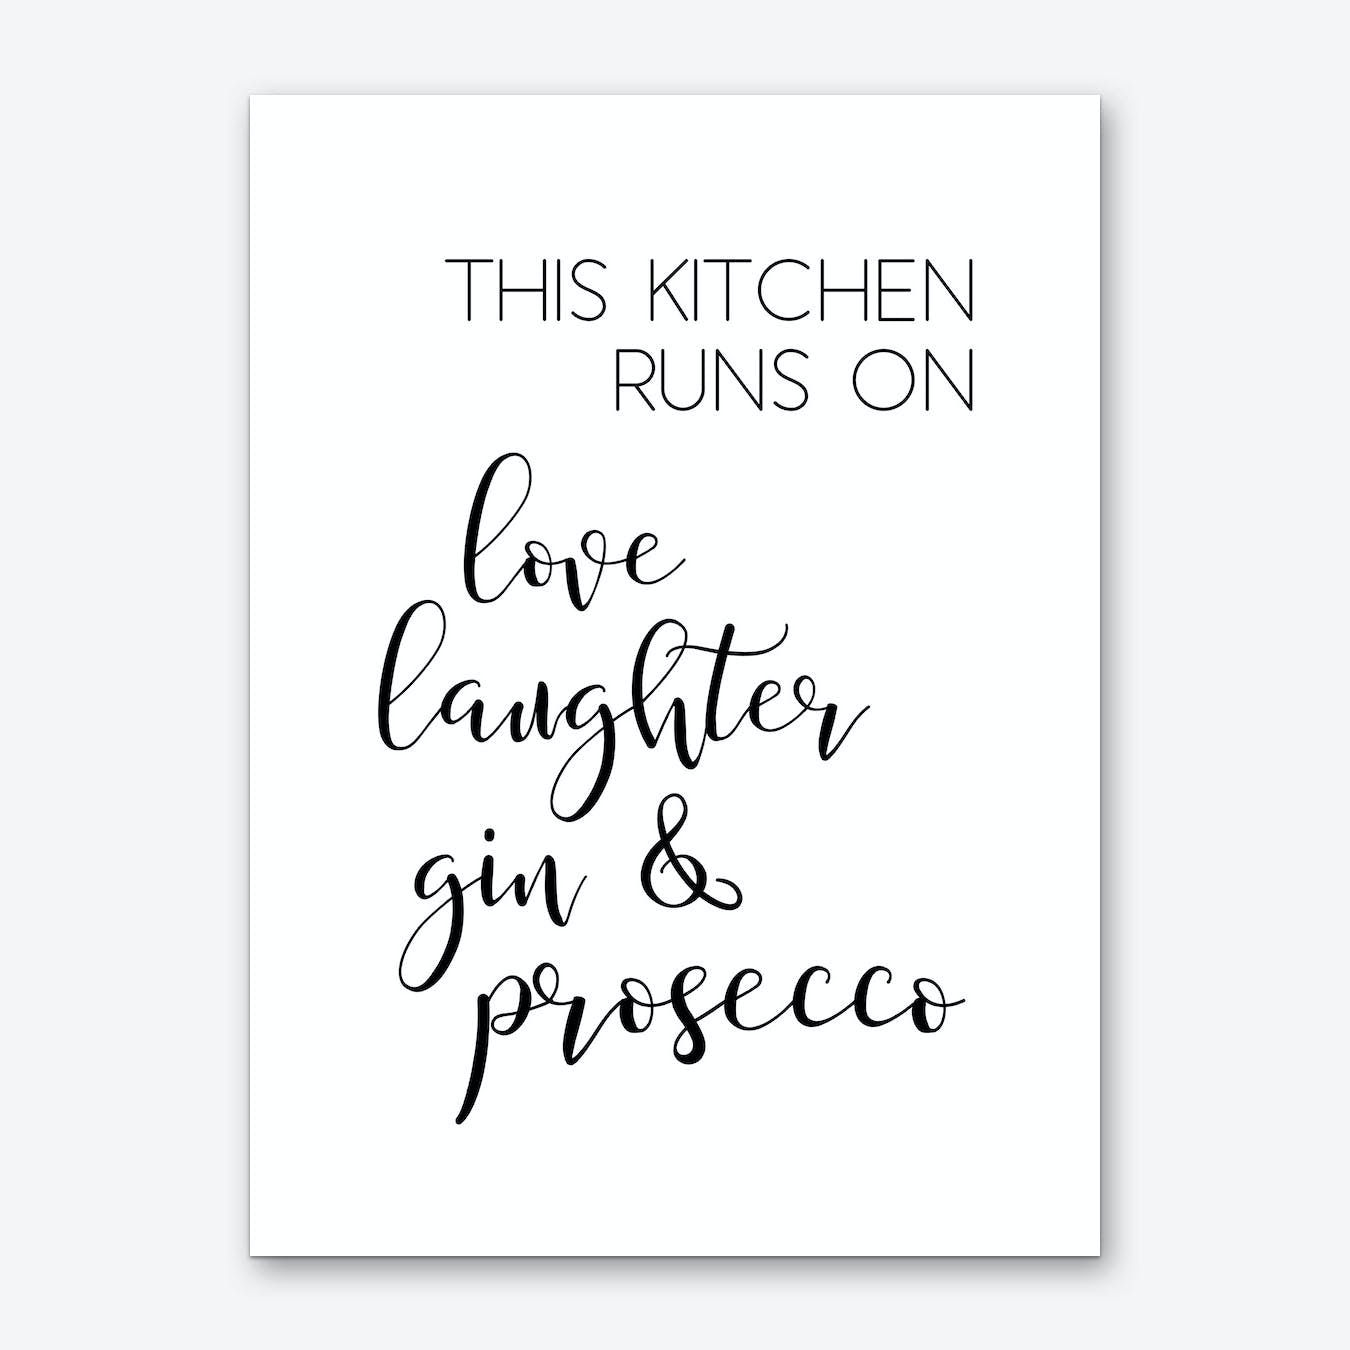 This Kitchen Runs On Love Laughter Gin and Prosecco Art Print